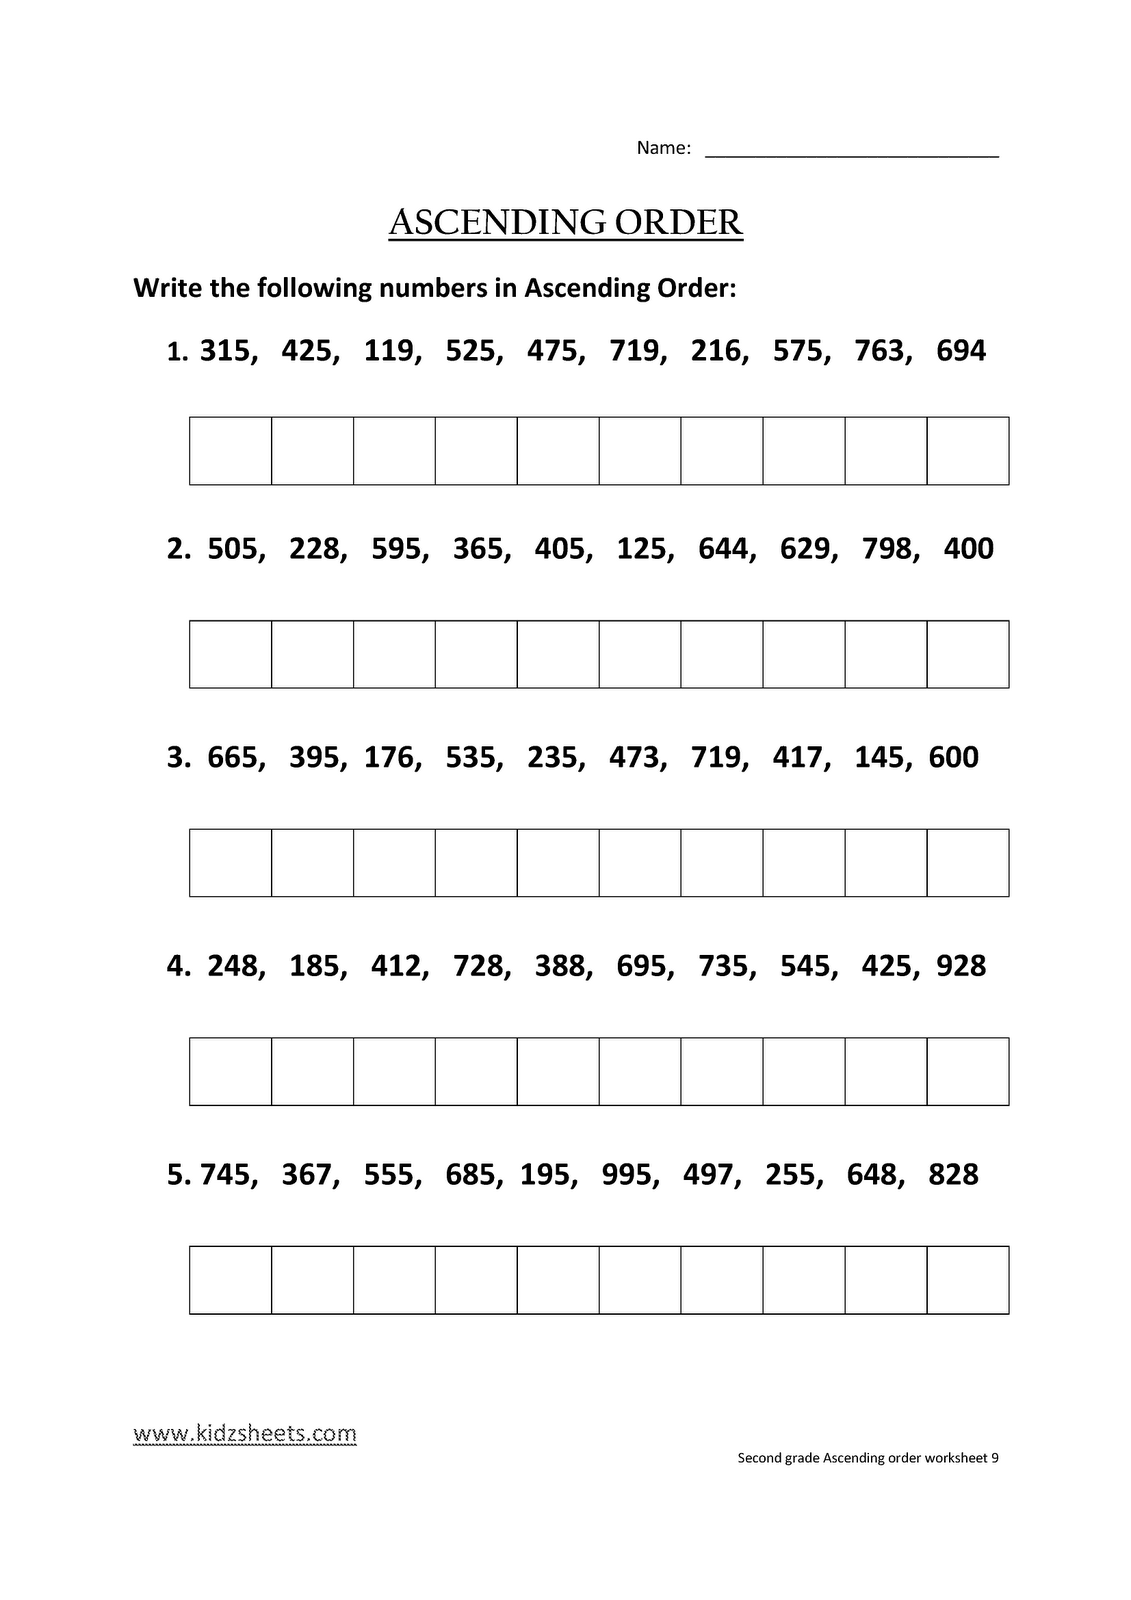 Mixed Addition And Subtraction With Regrouping Worksheets counting – Mixed Addition and Subtraction with Regrouping Worksheets